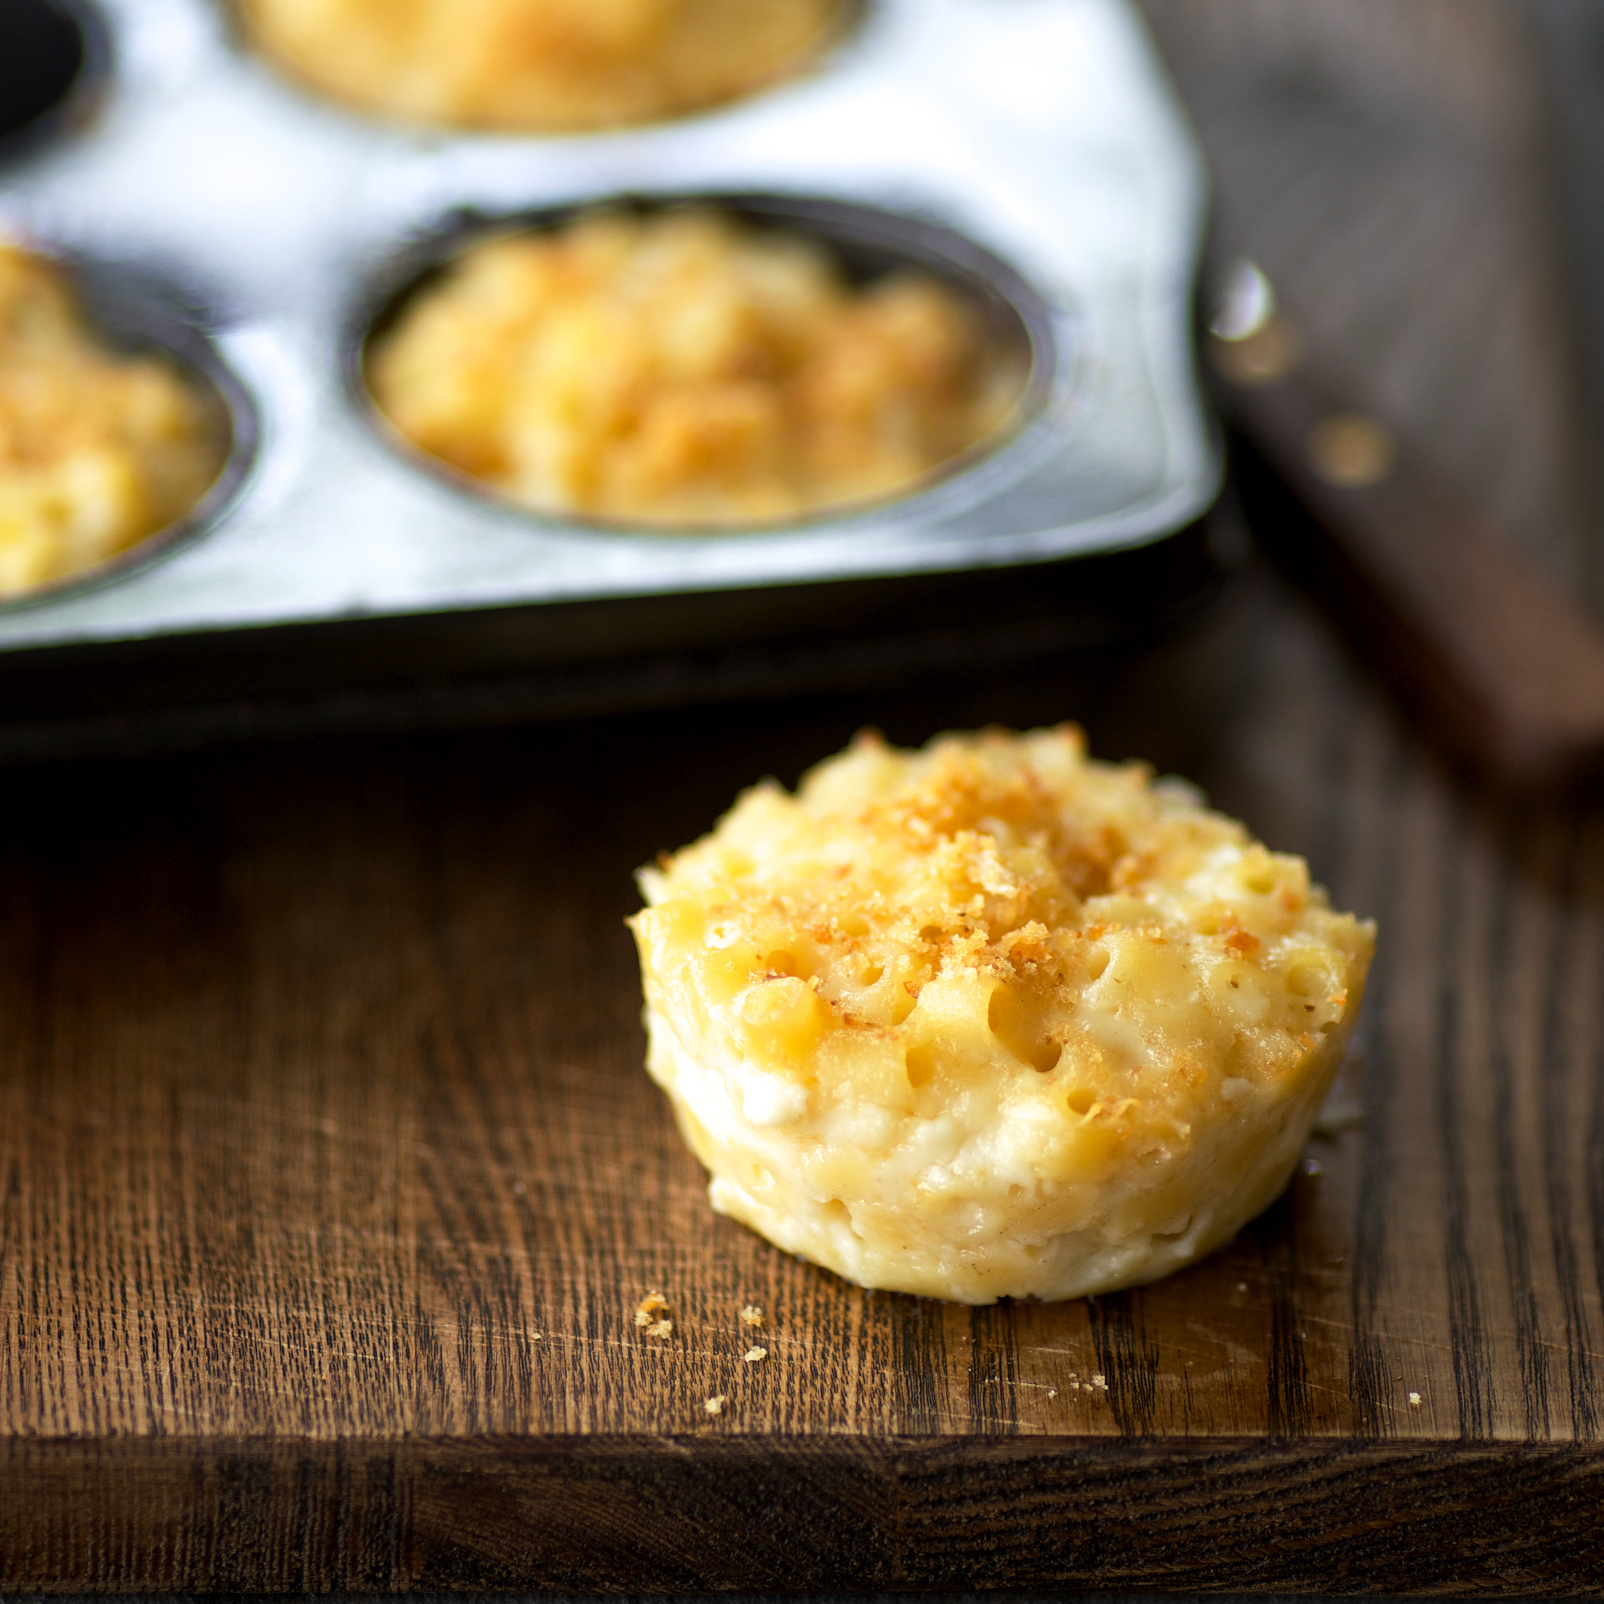 201408-r-muffin-cup-macaroni-and-cheese.jpg